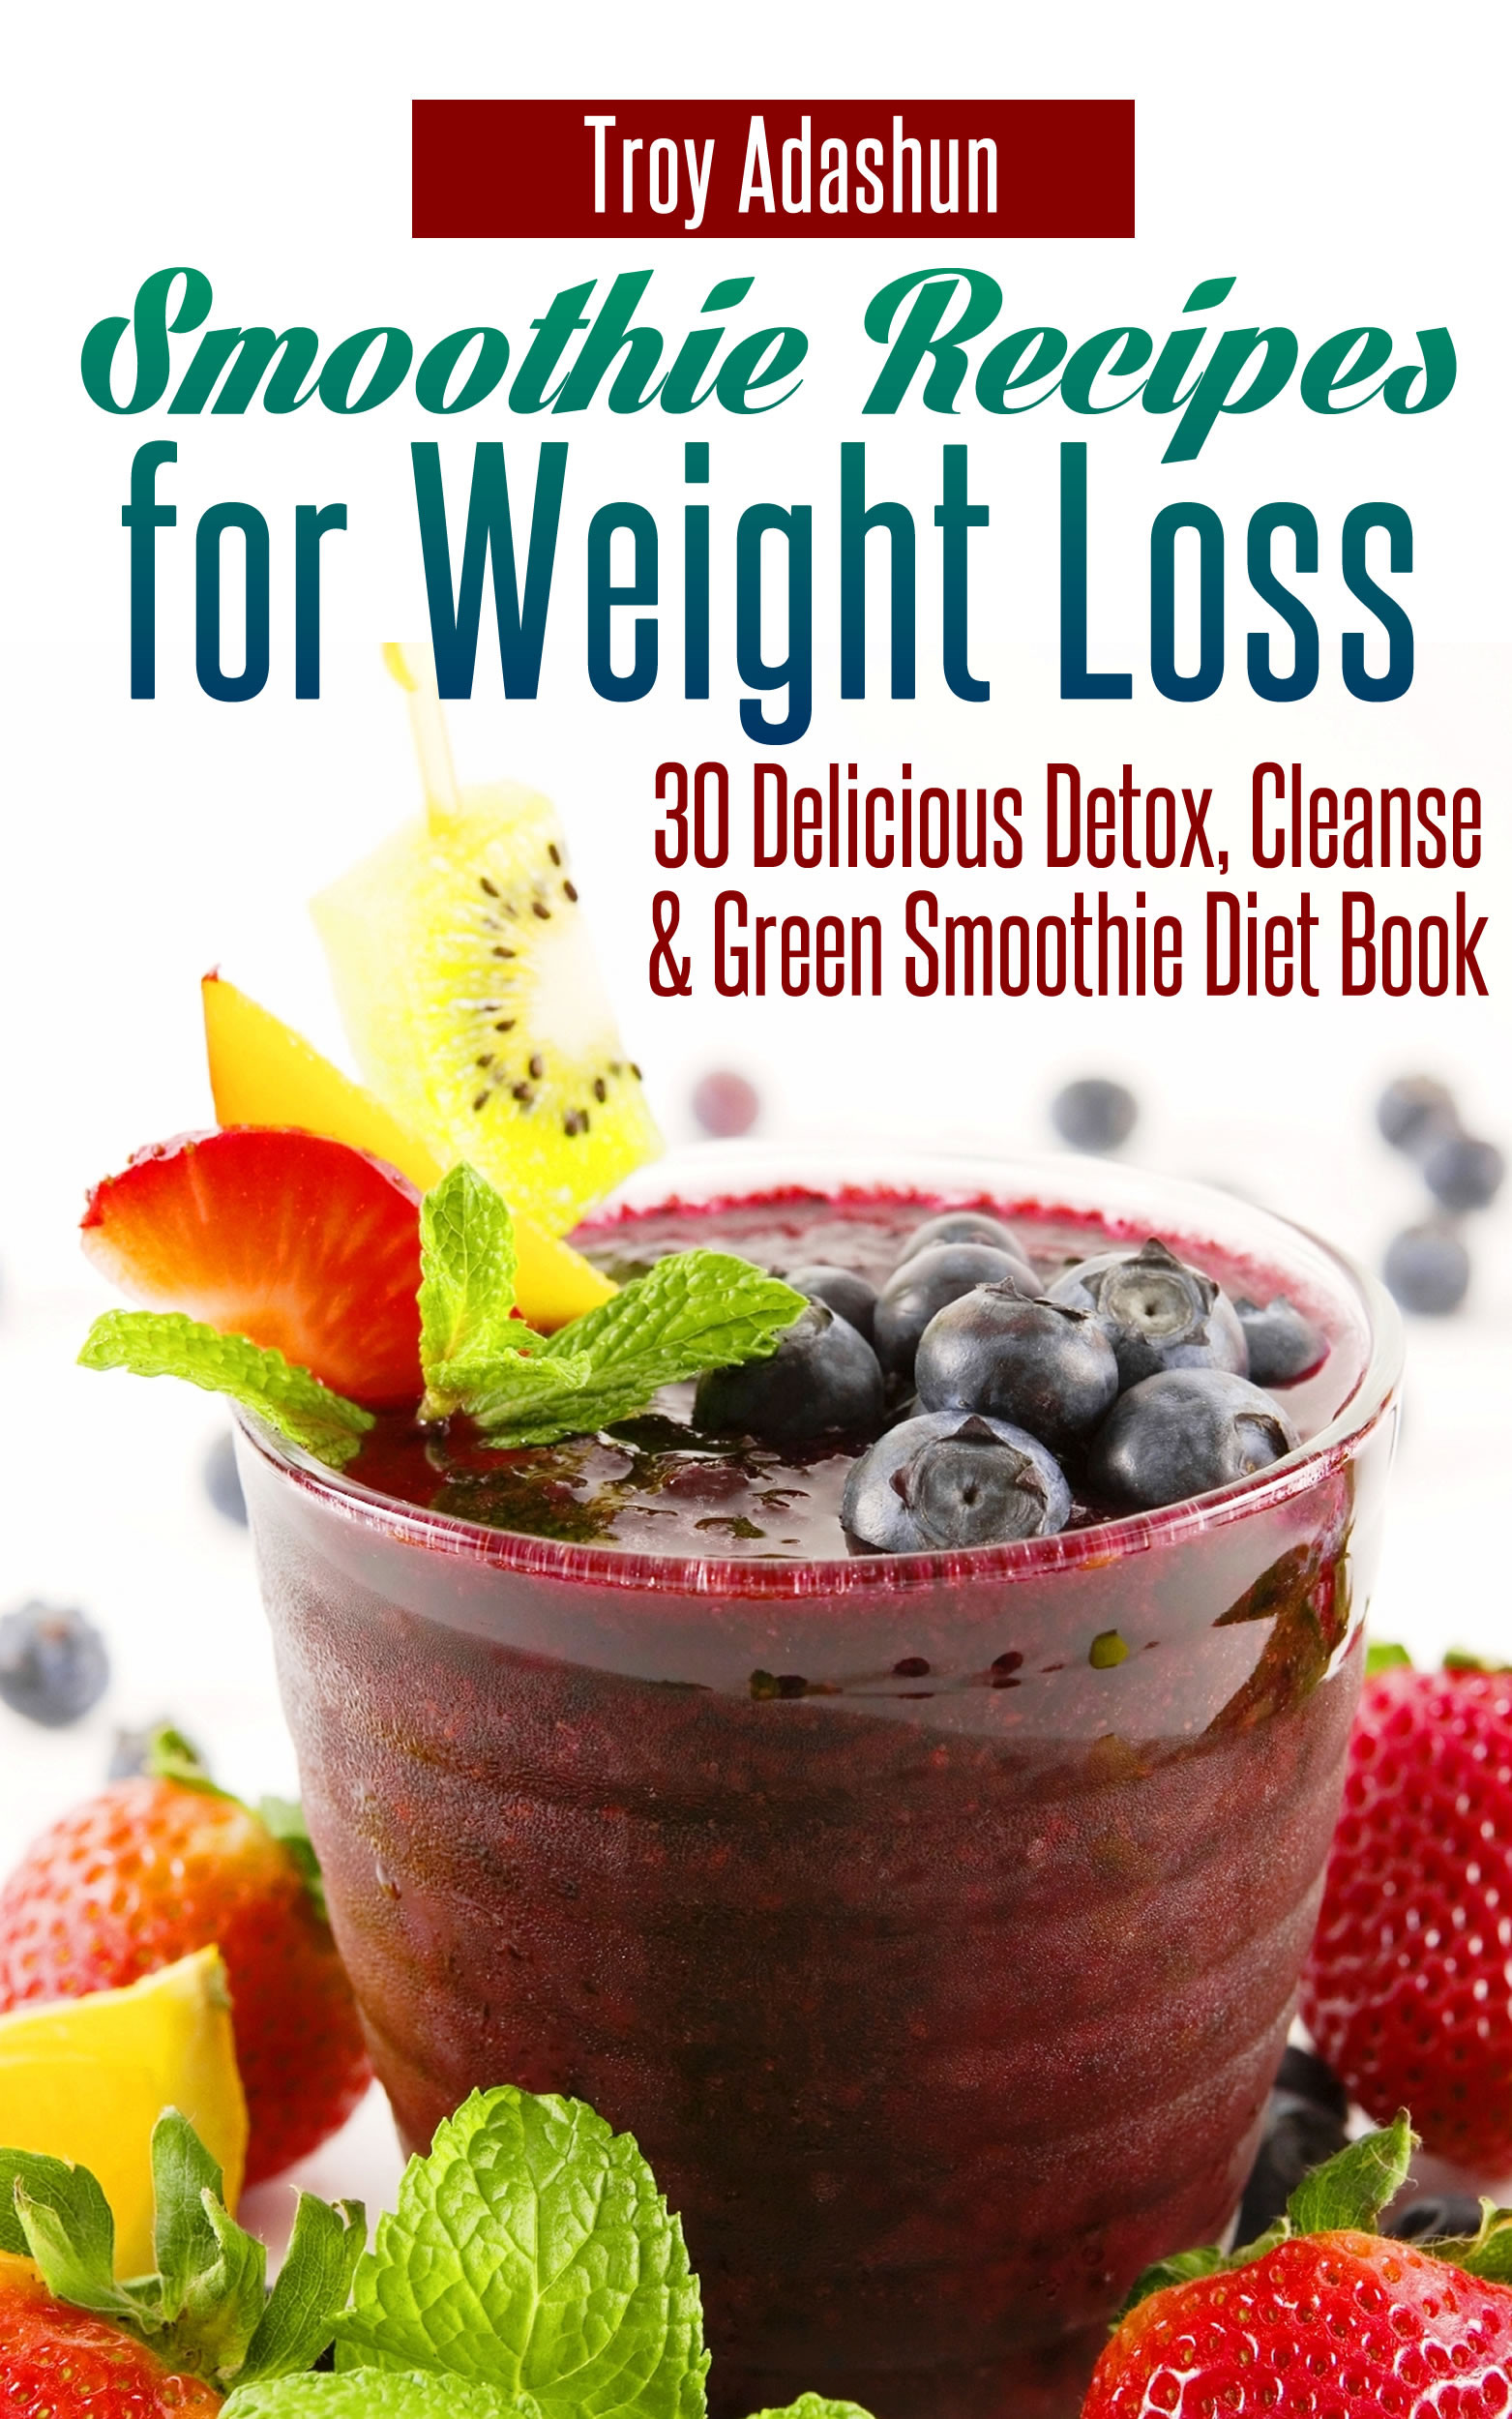 Smoothie Diet Recipes For Weight Loss  Smashwords – Smoothie Recipes for Weight Loss 30